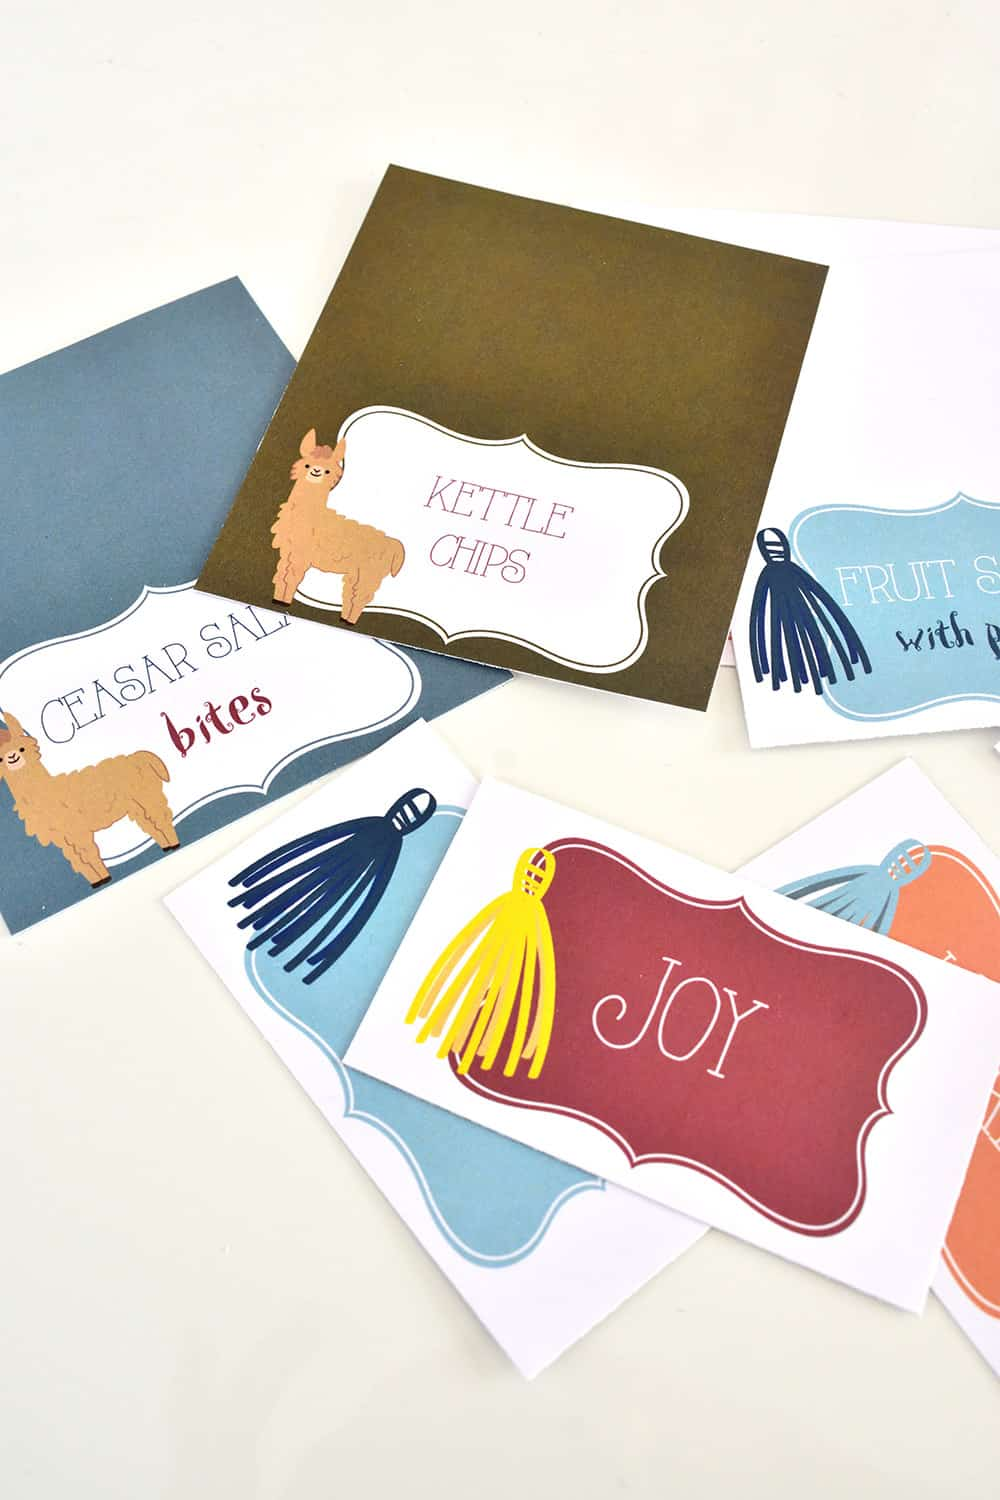 Printed place cards and food tent cards